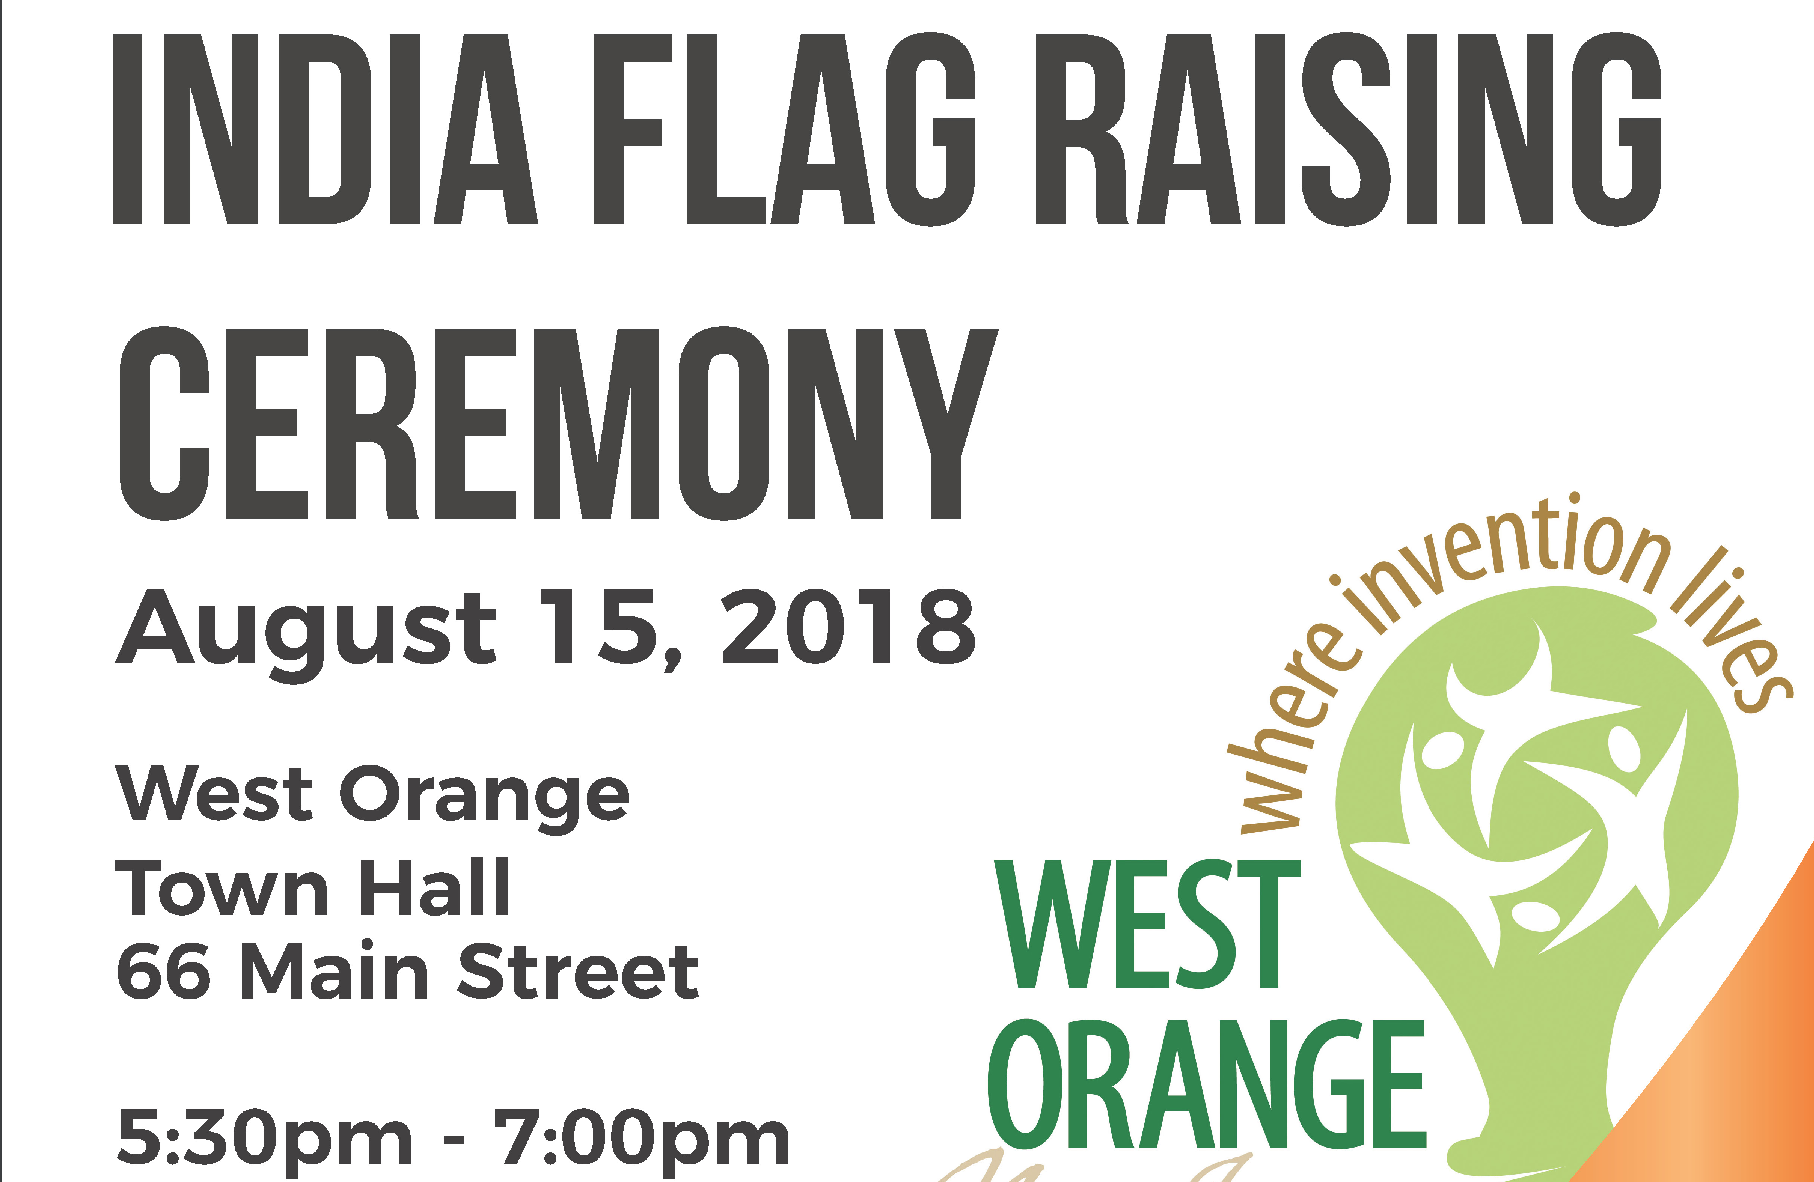 Indian Flag Raising Ceremony to be Held in West Orange